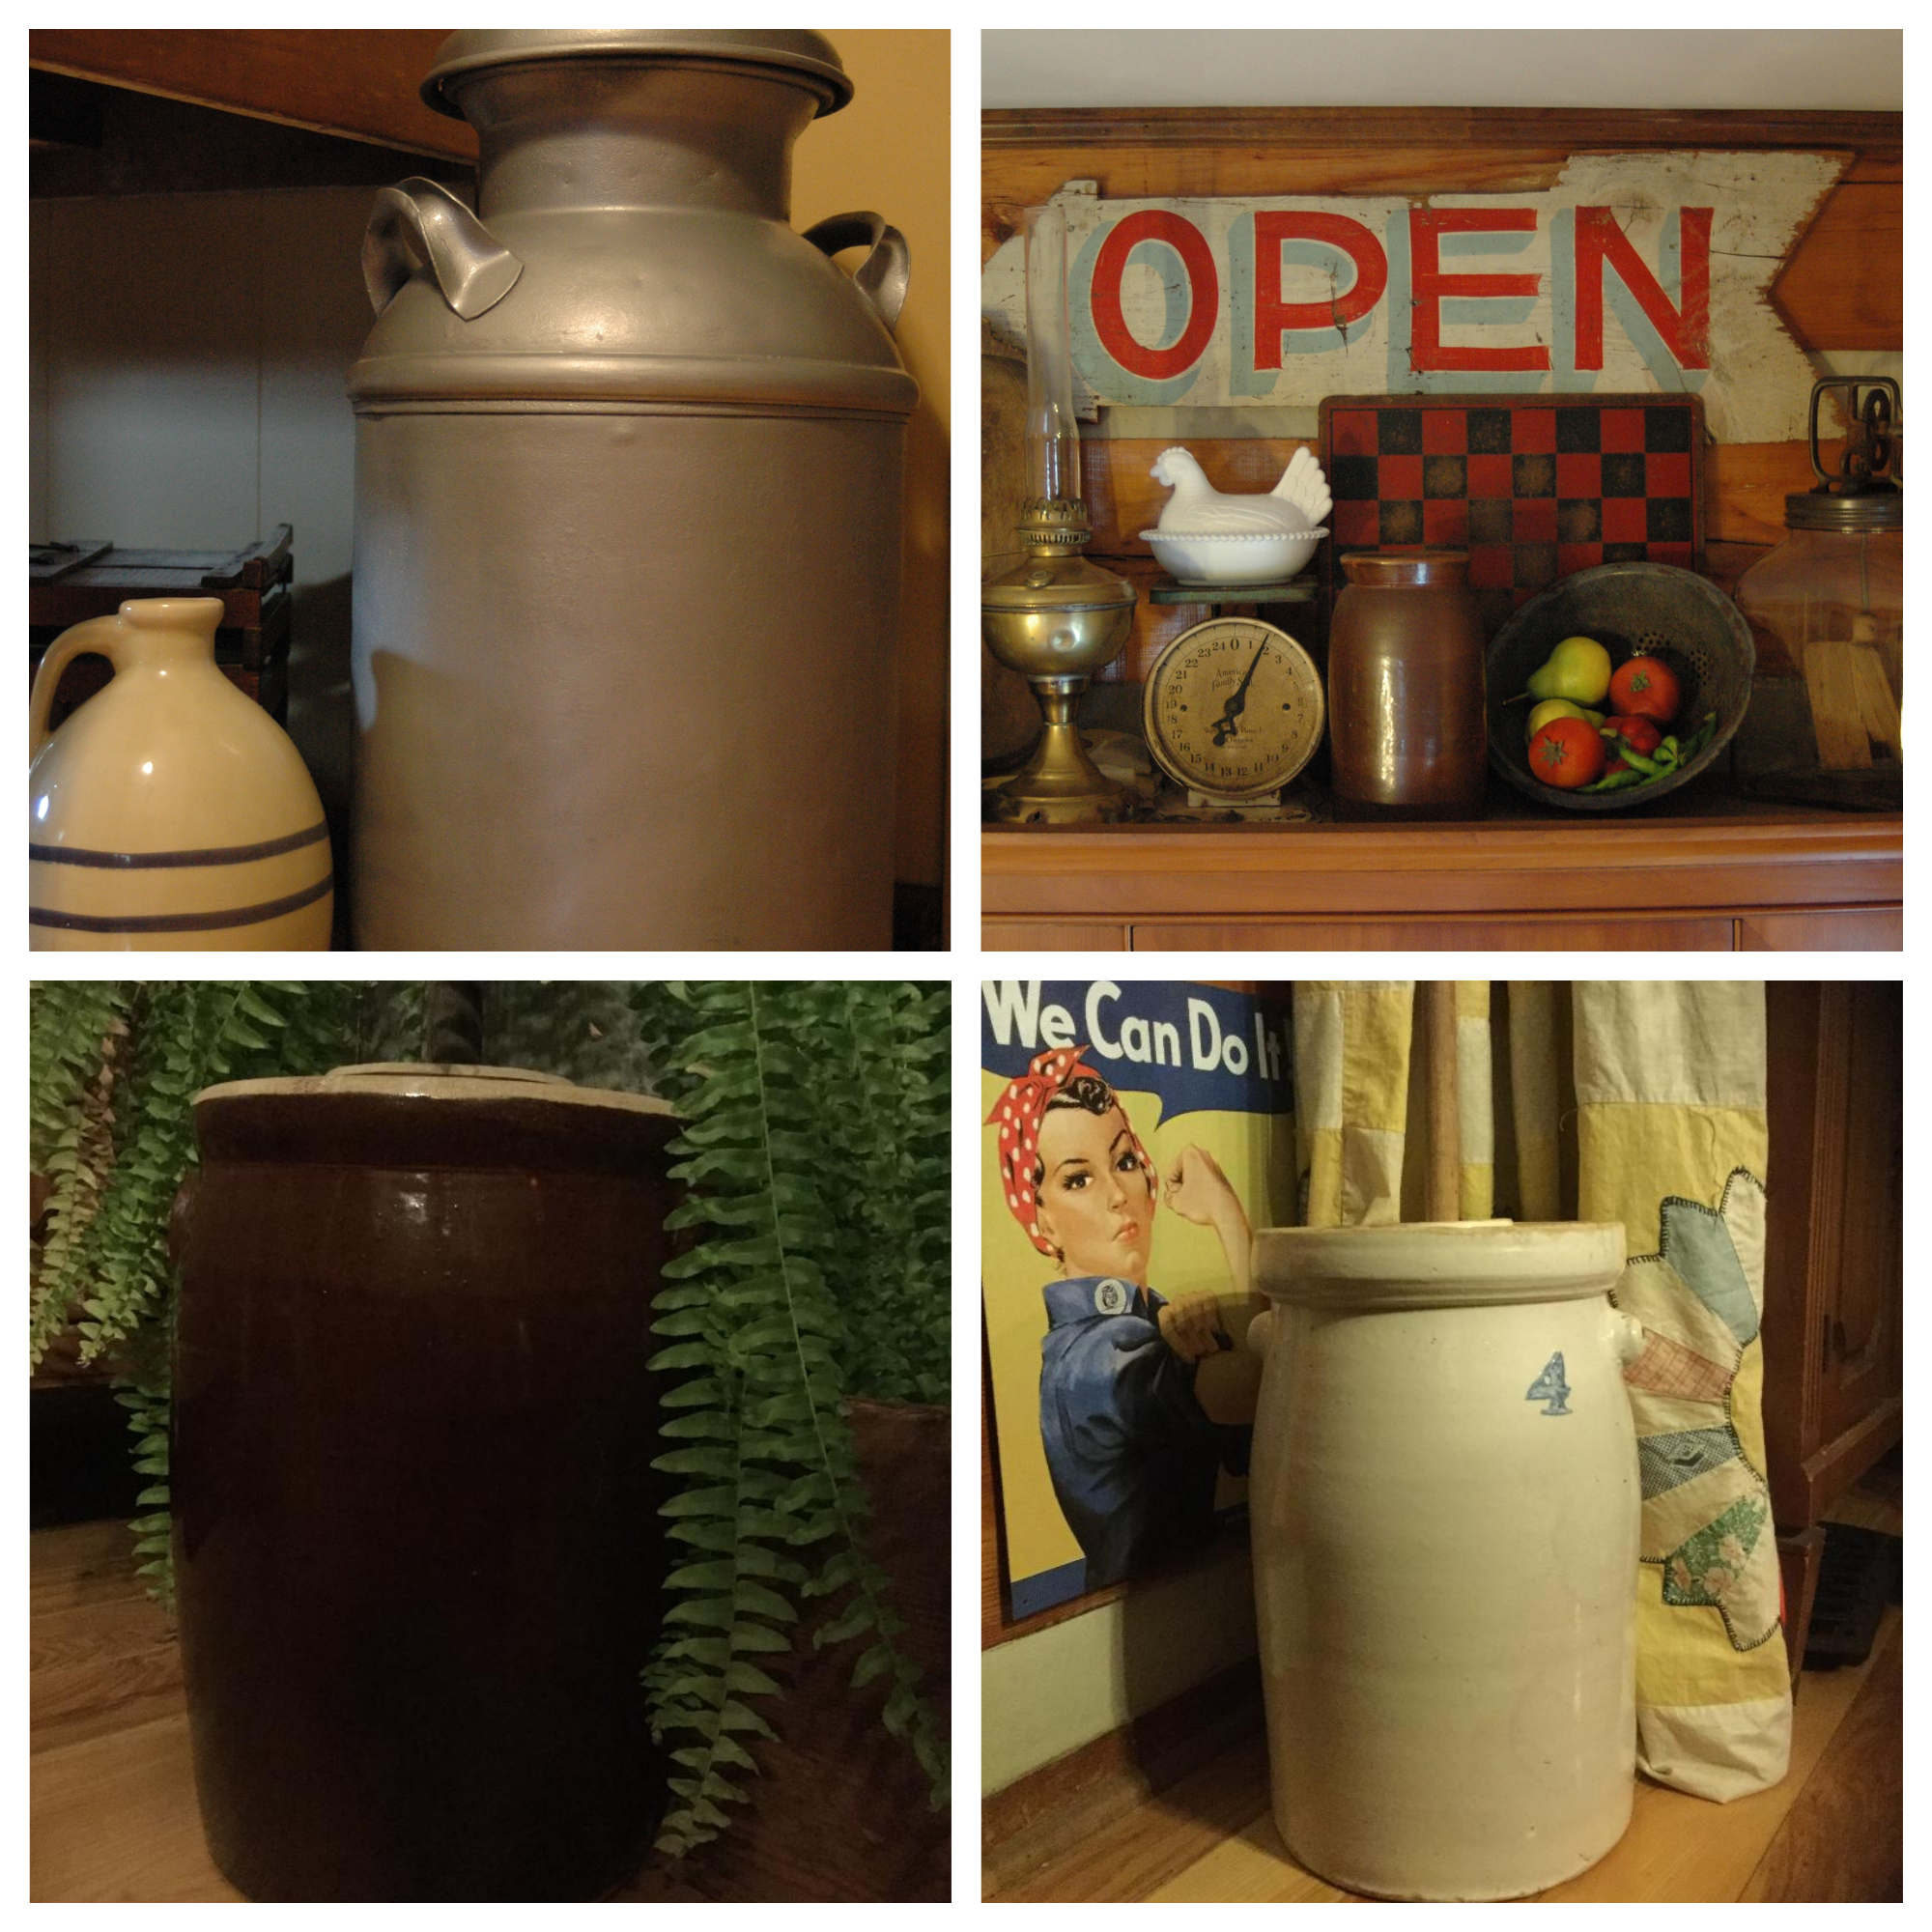 One of my grandfather's milk cans (top left), vintage hand-cranked churn (top right), a pottery churn given to me by a friend (bottom left), and the churn my Aunt Karen gave me (bottom right)